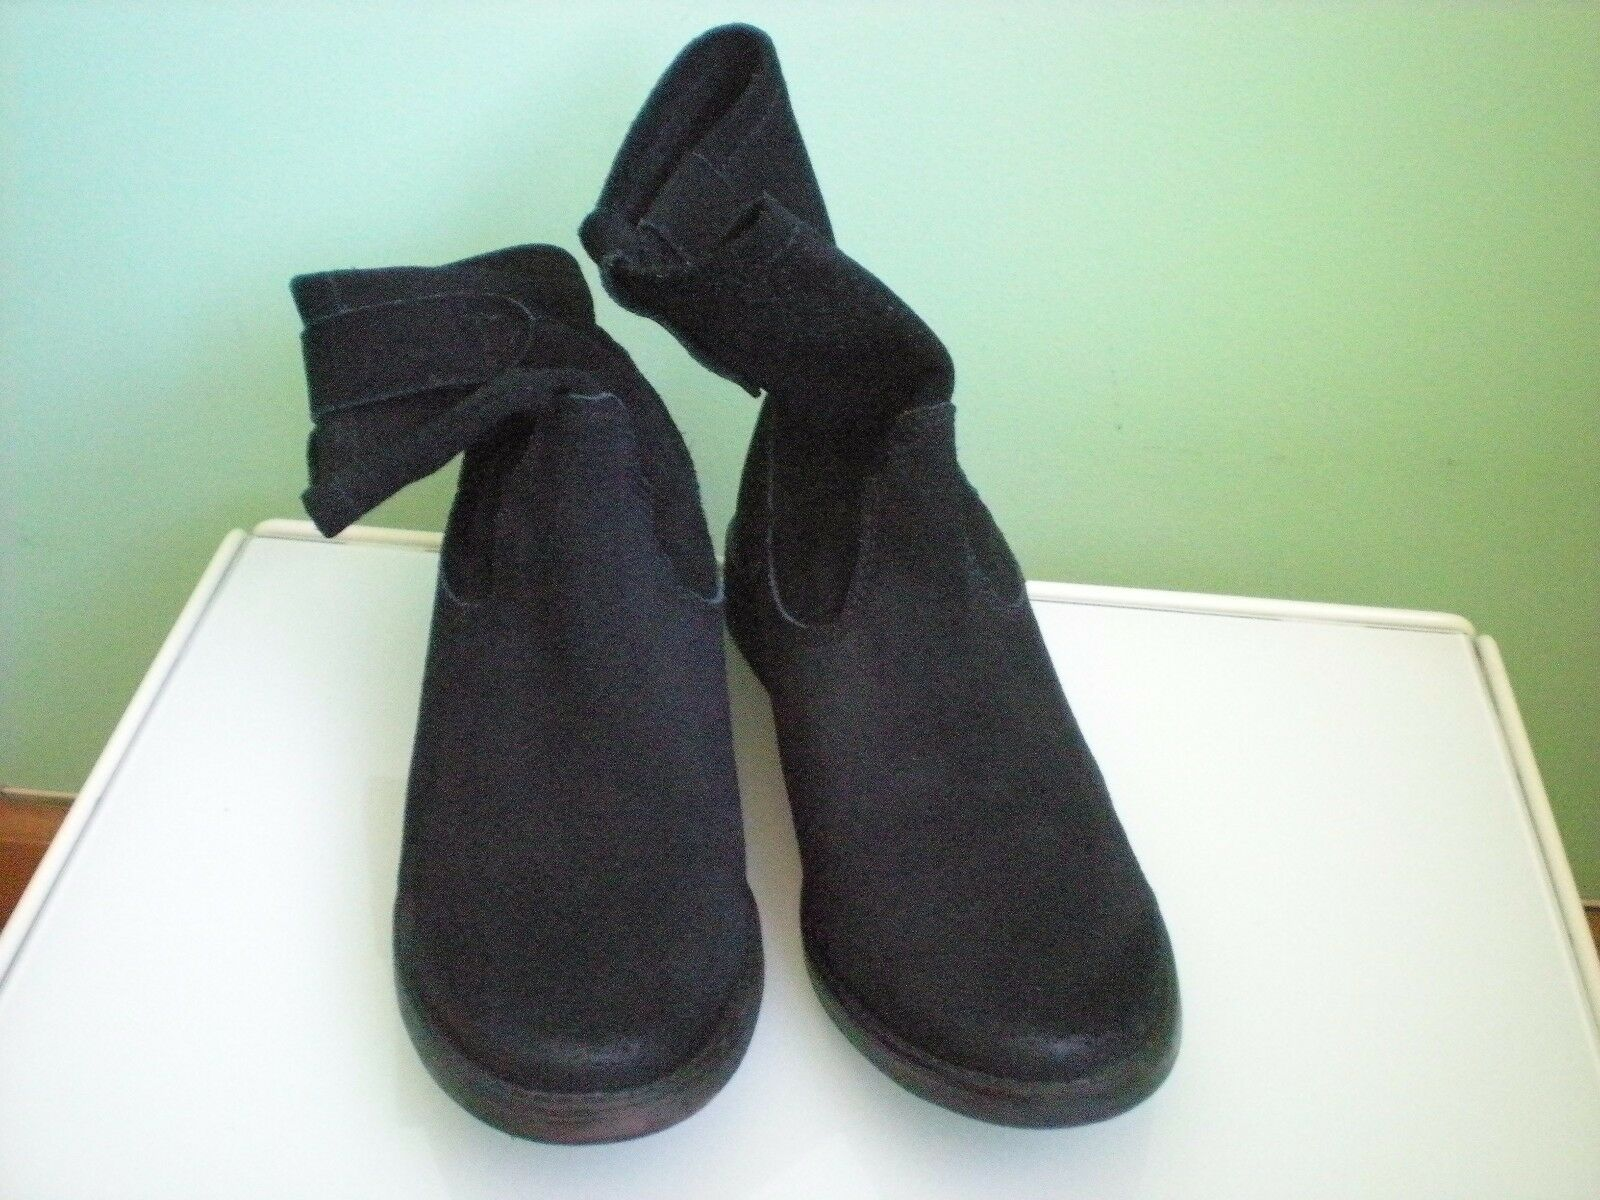 ZIGI Black Suede Leather Slip On  Ankle Boots SZ 8.5